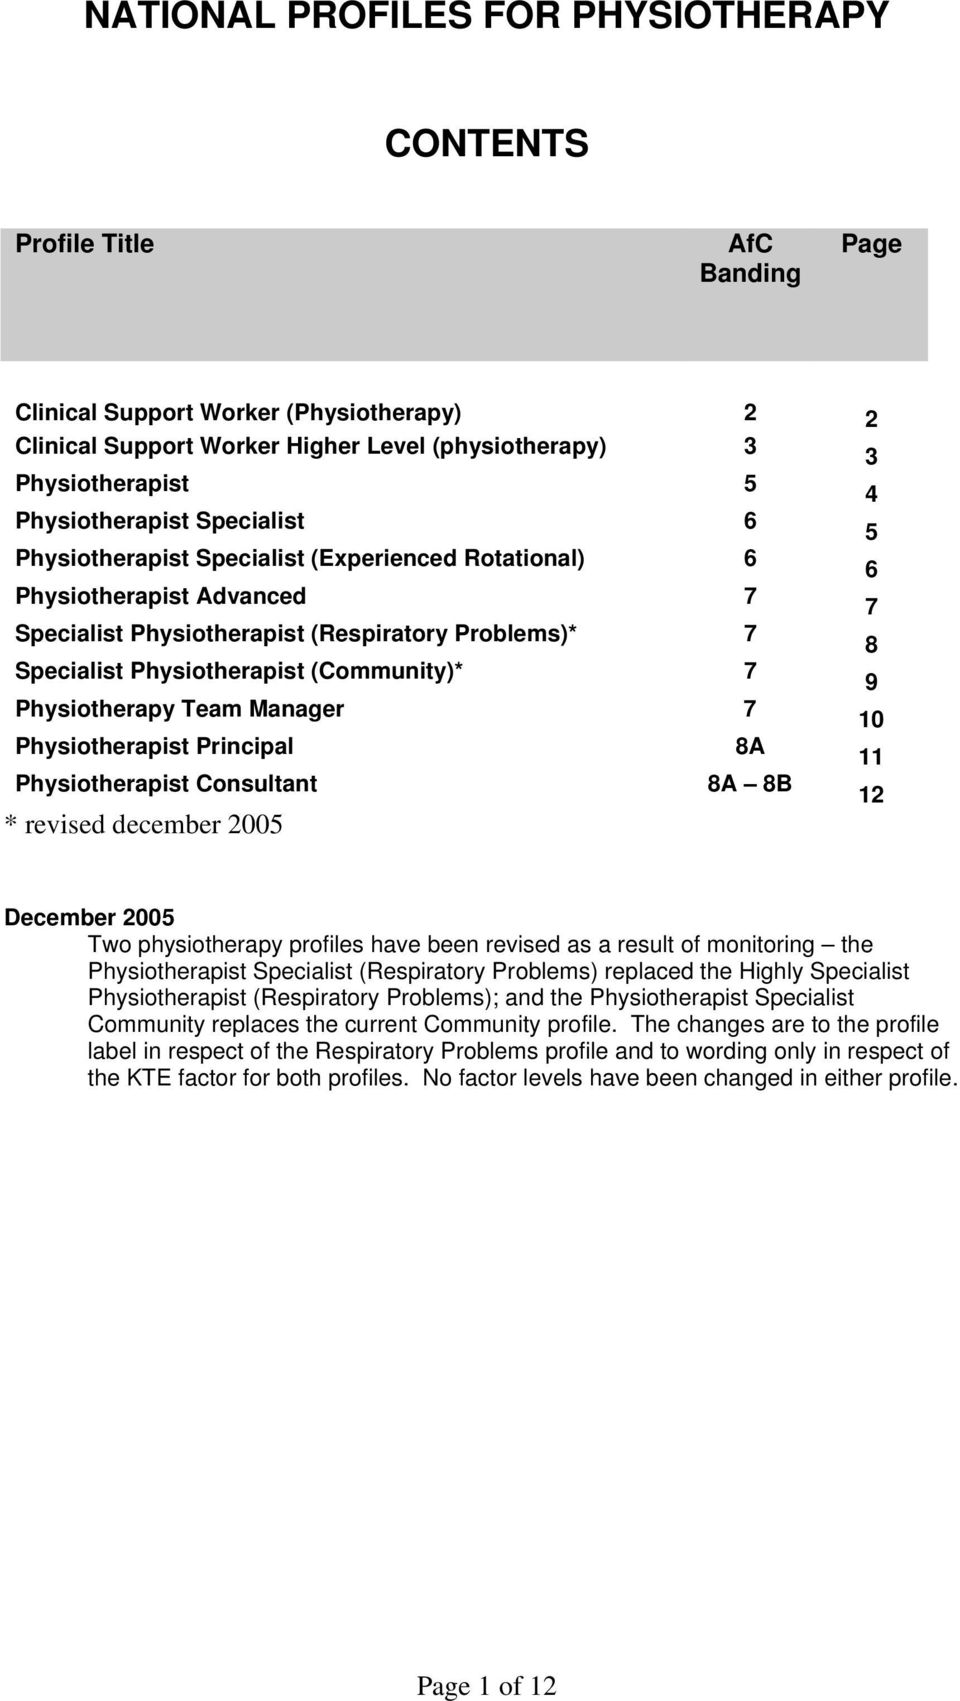 (Community)* 7 9 Physiotherapy Team Manager 7 10 Physiotherapist Principal 8A 11 Physiotherapist Consultant 8A 8B 12 * revised december 2005 December 2005 Two physiotherapy profiles have been revised